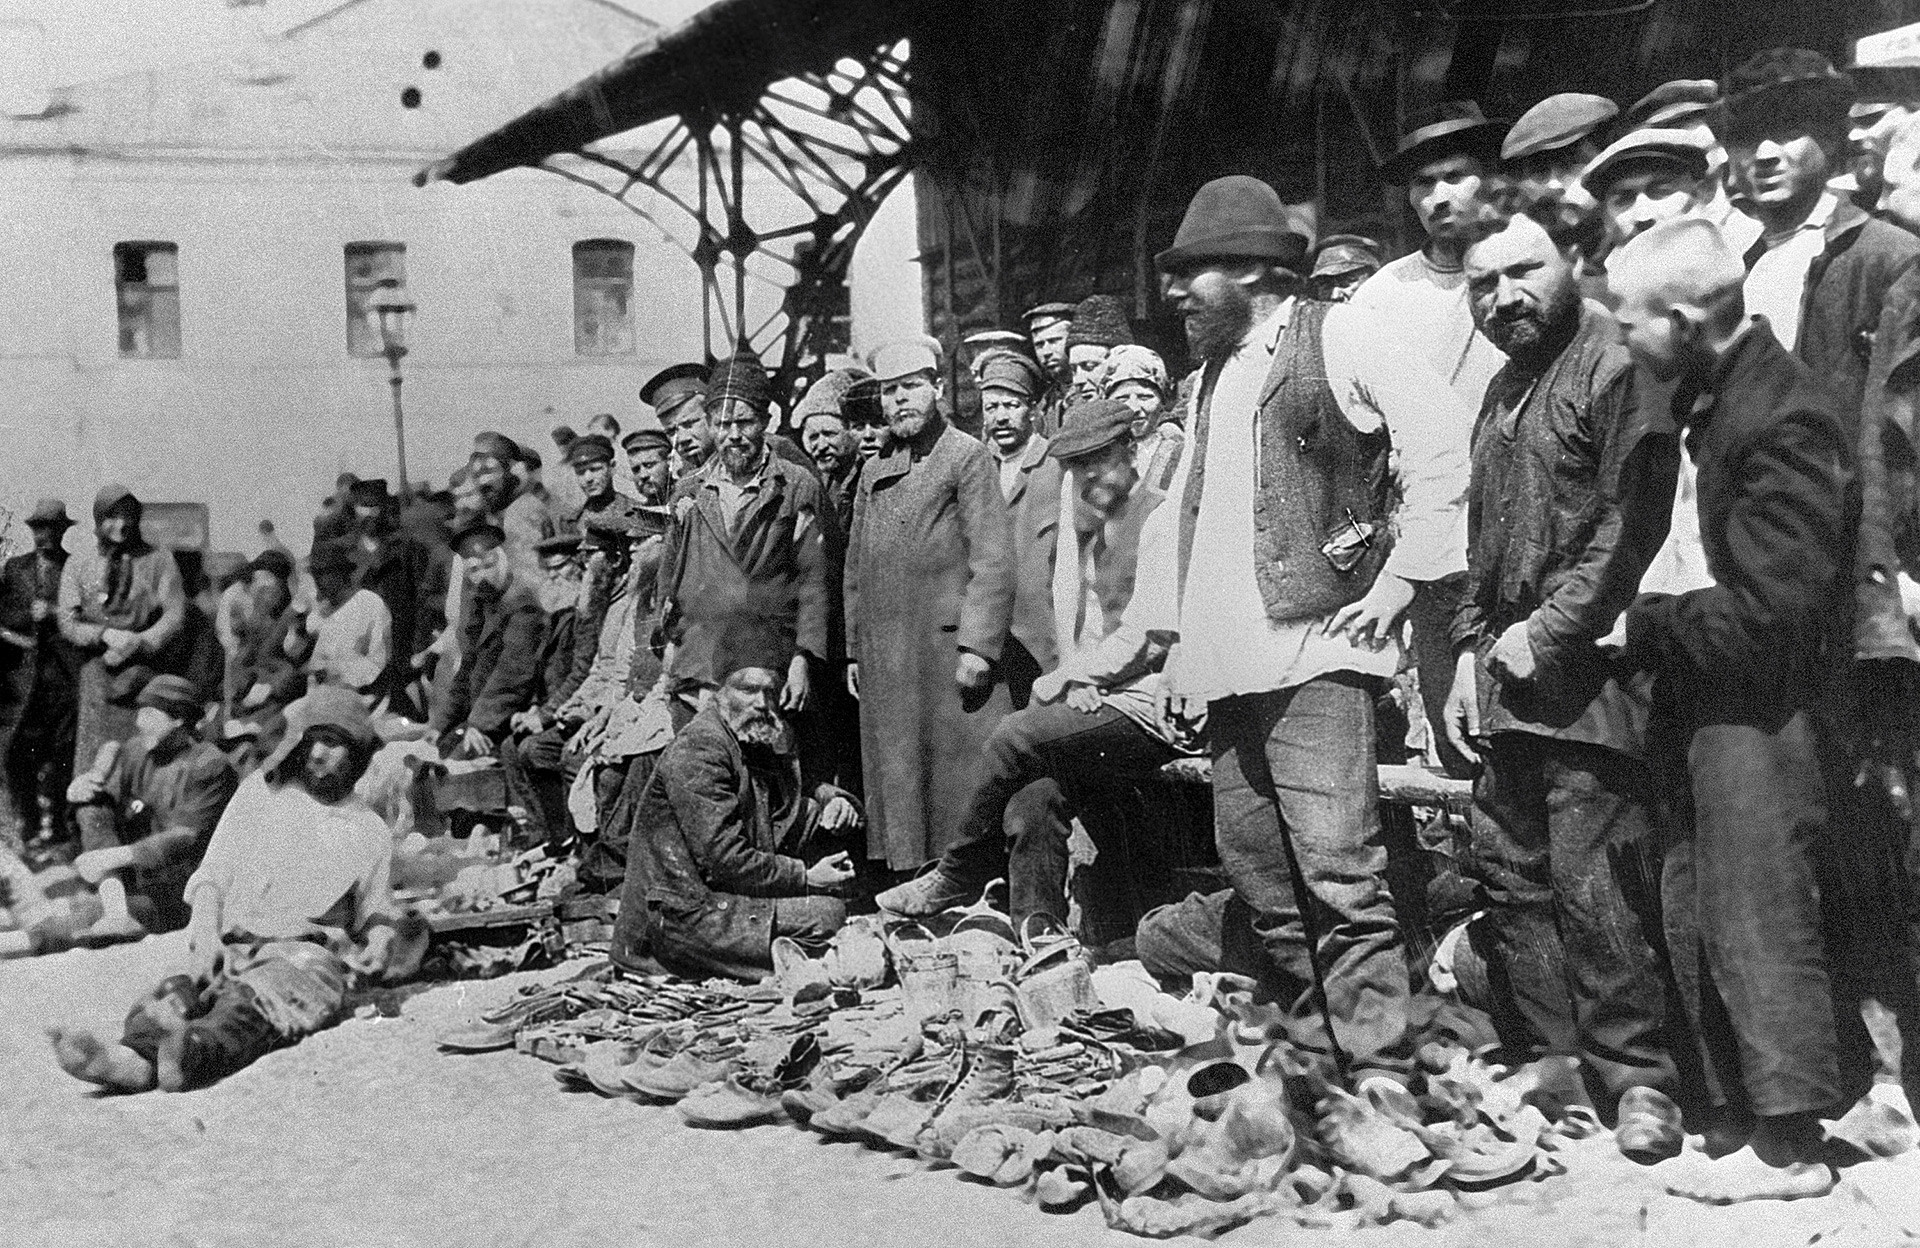 Shoe sale at Hitrovskiy market in Moscow. This was the place where a lot of criminals came to look for jobs.